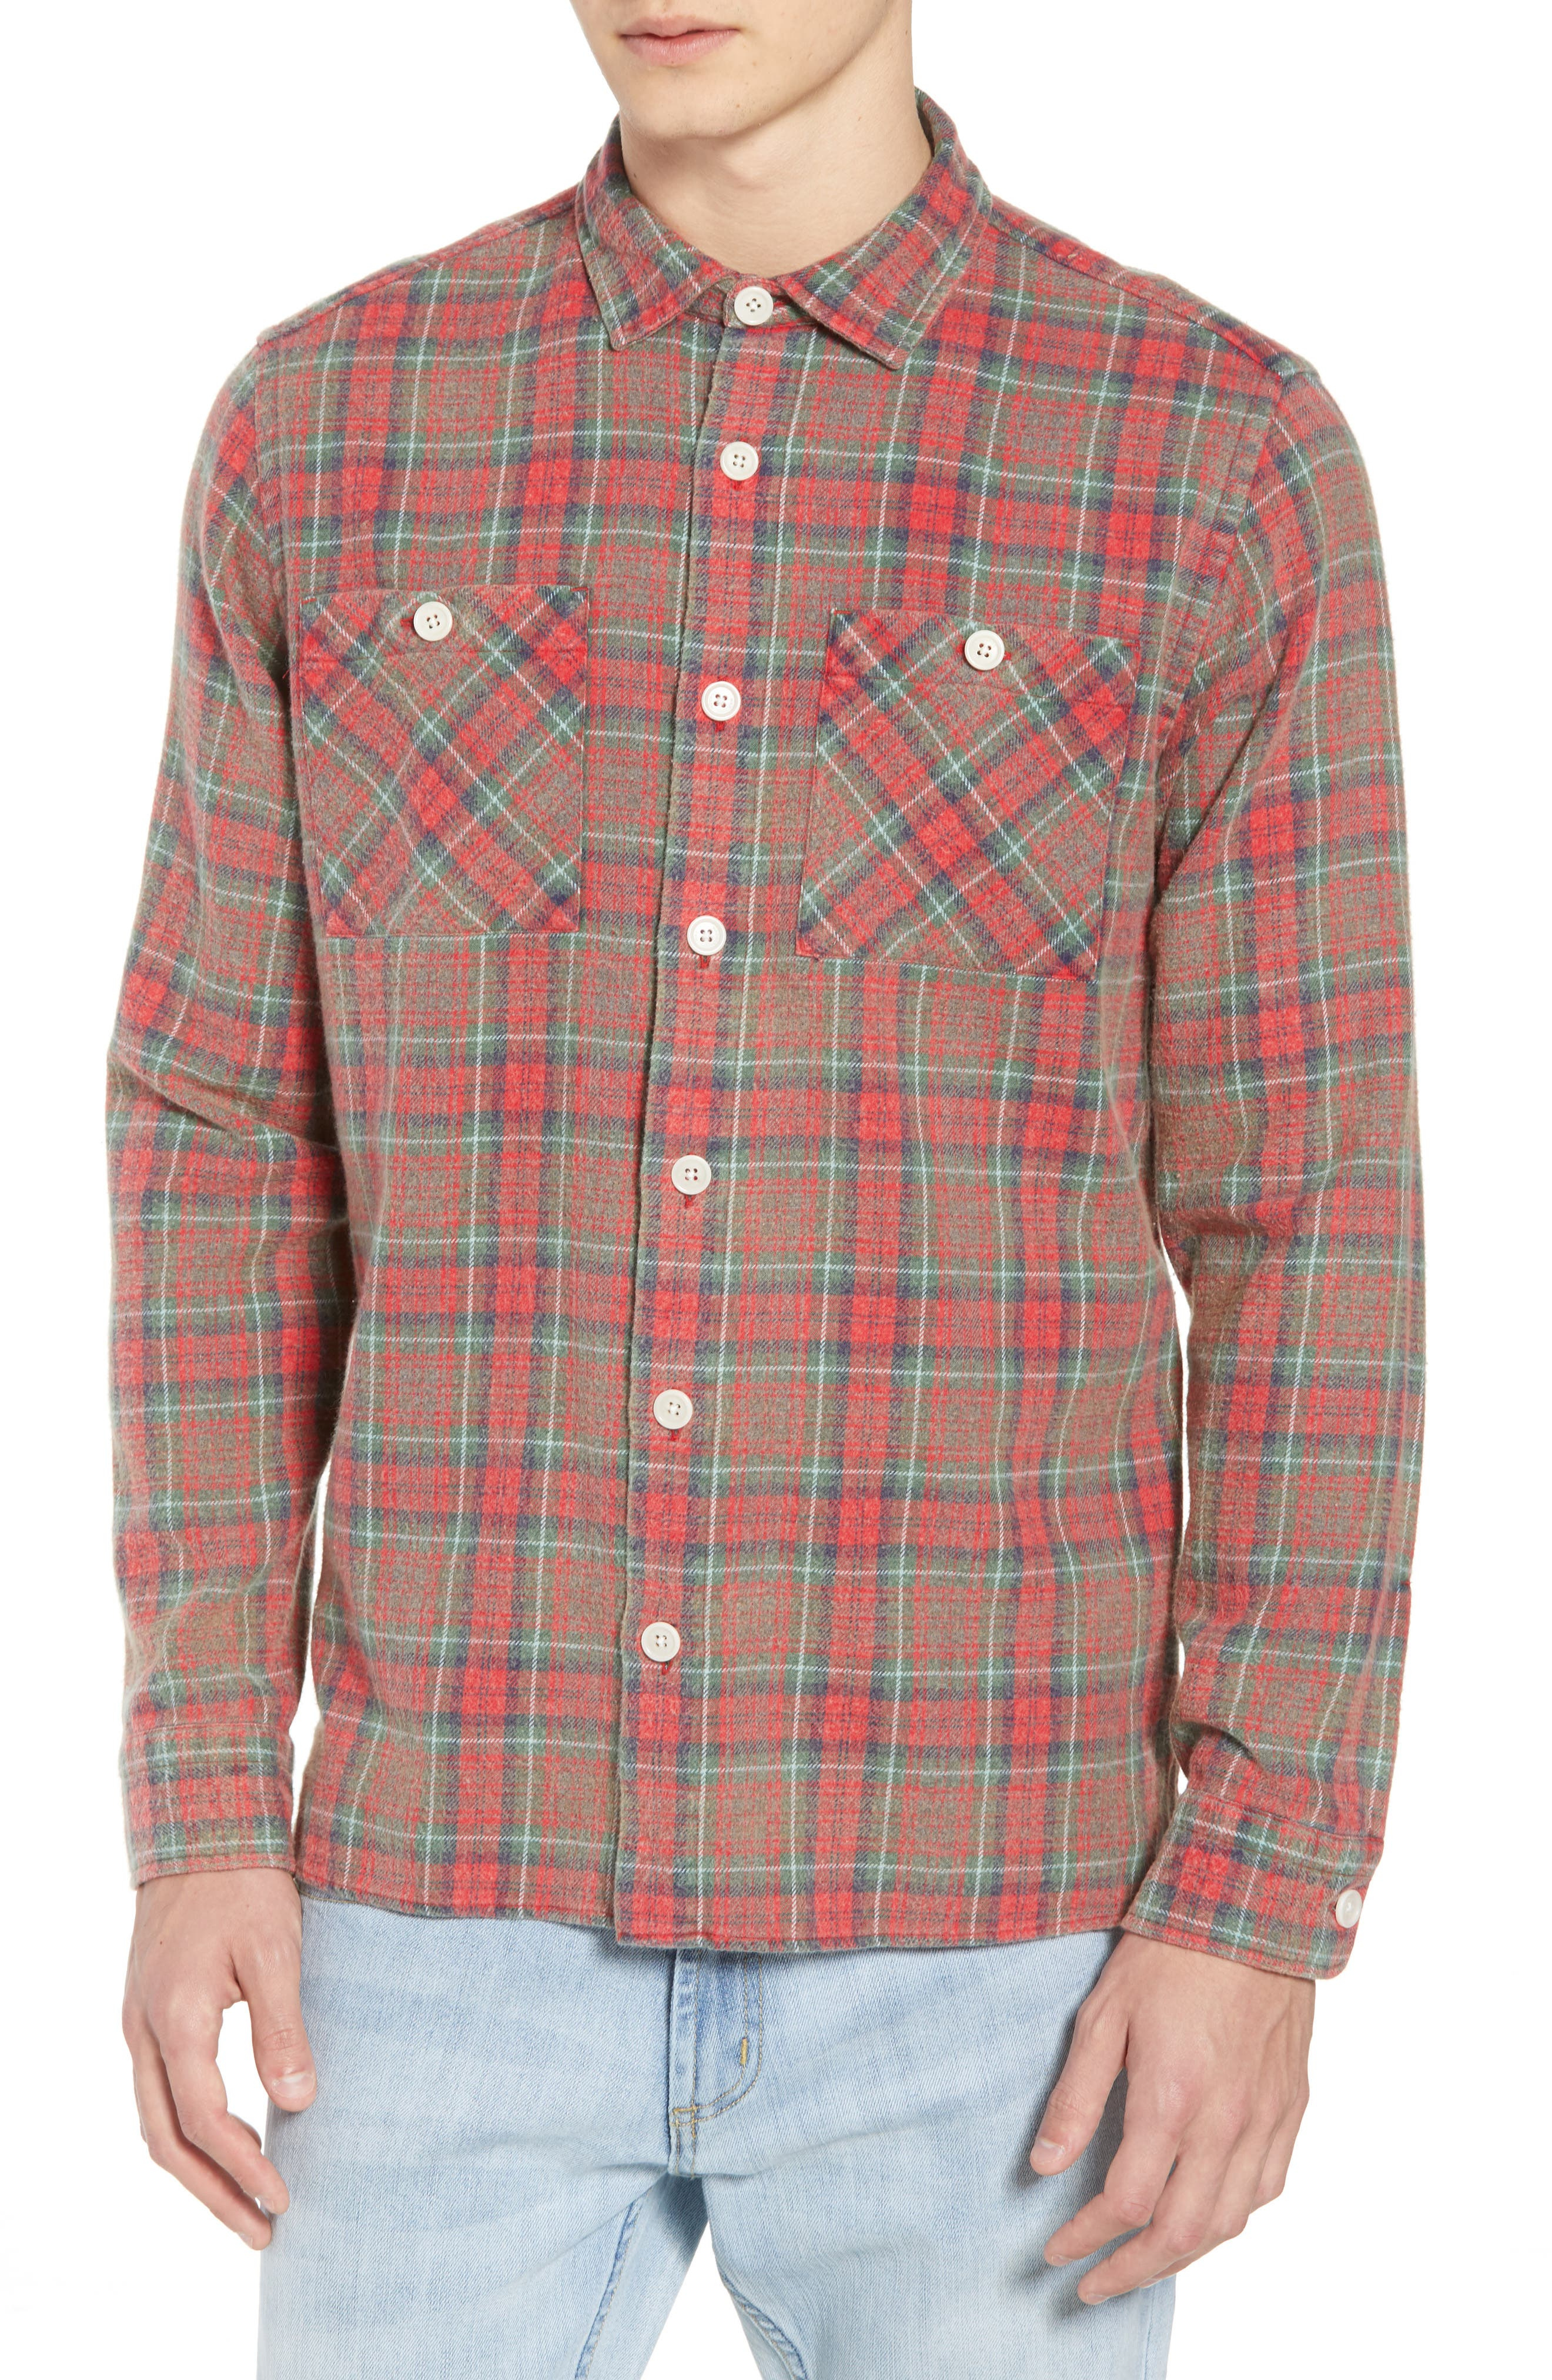 Wax London Whiting Plaid Flannel Shirt, Red